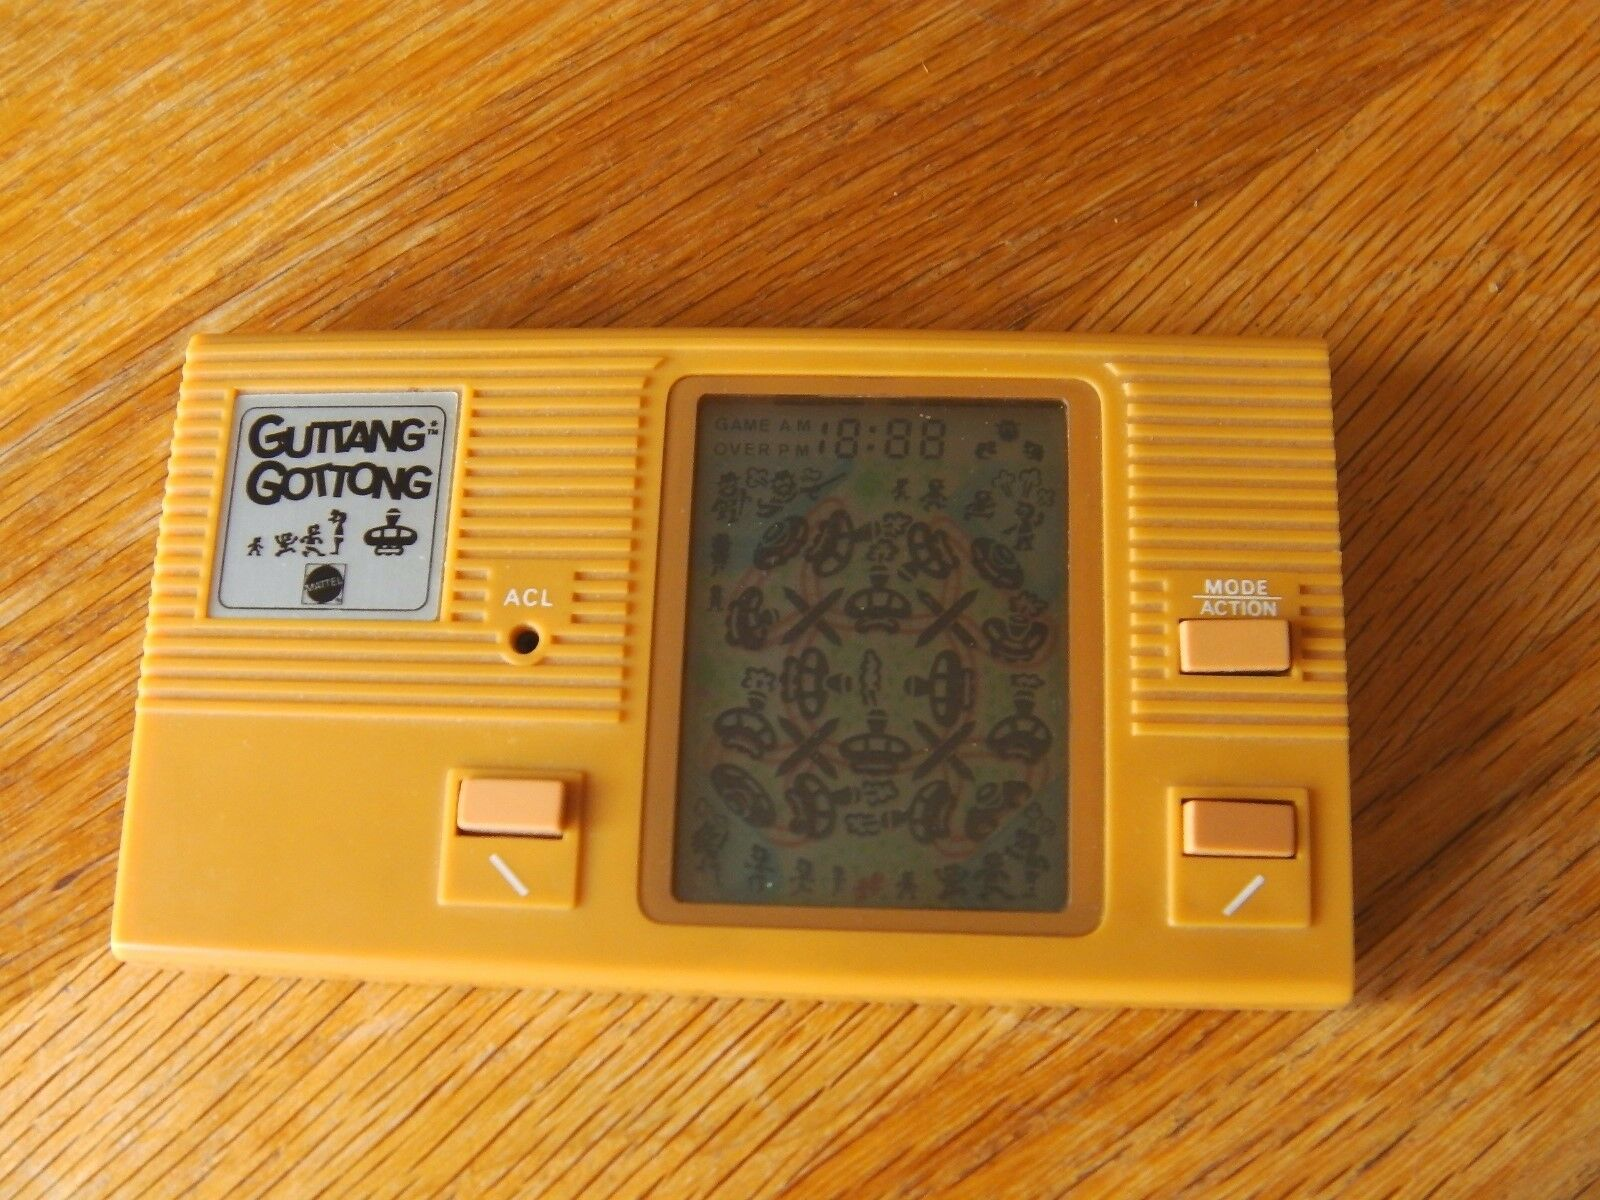 Lcd game Mattel   Guttang Gottong   game watch 1982